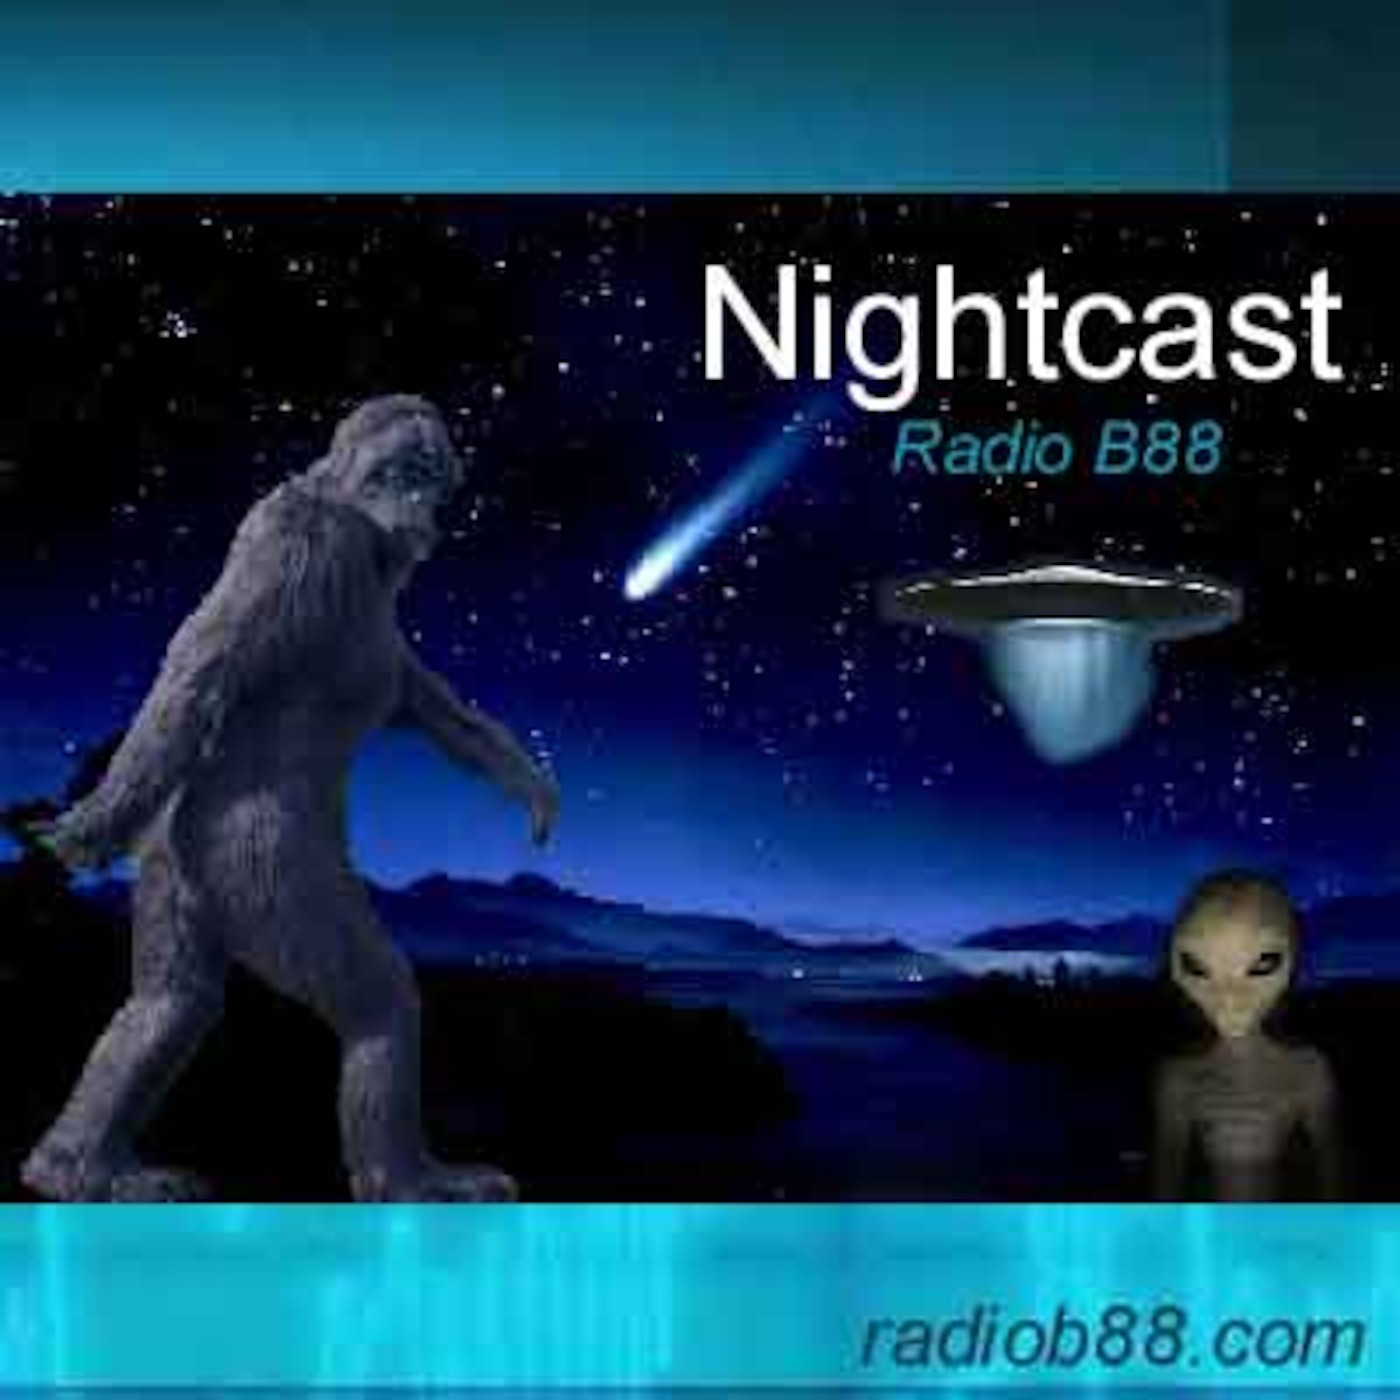 Nightcast Radio B88 Podcast